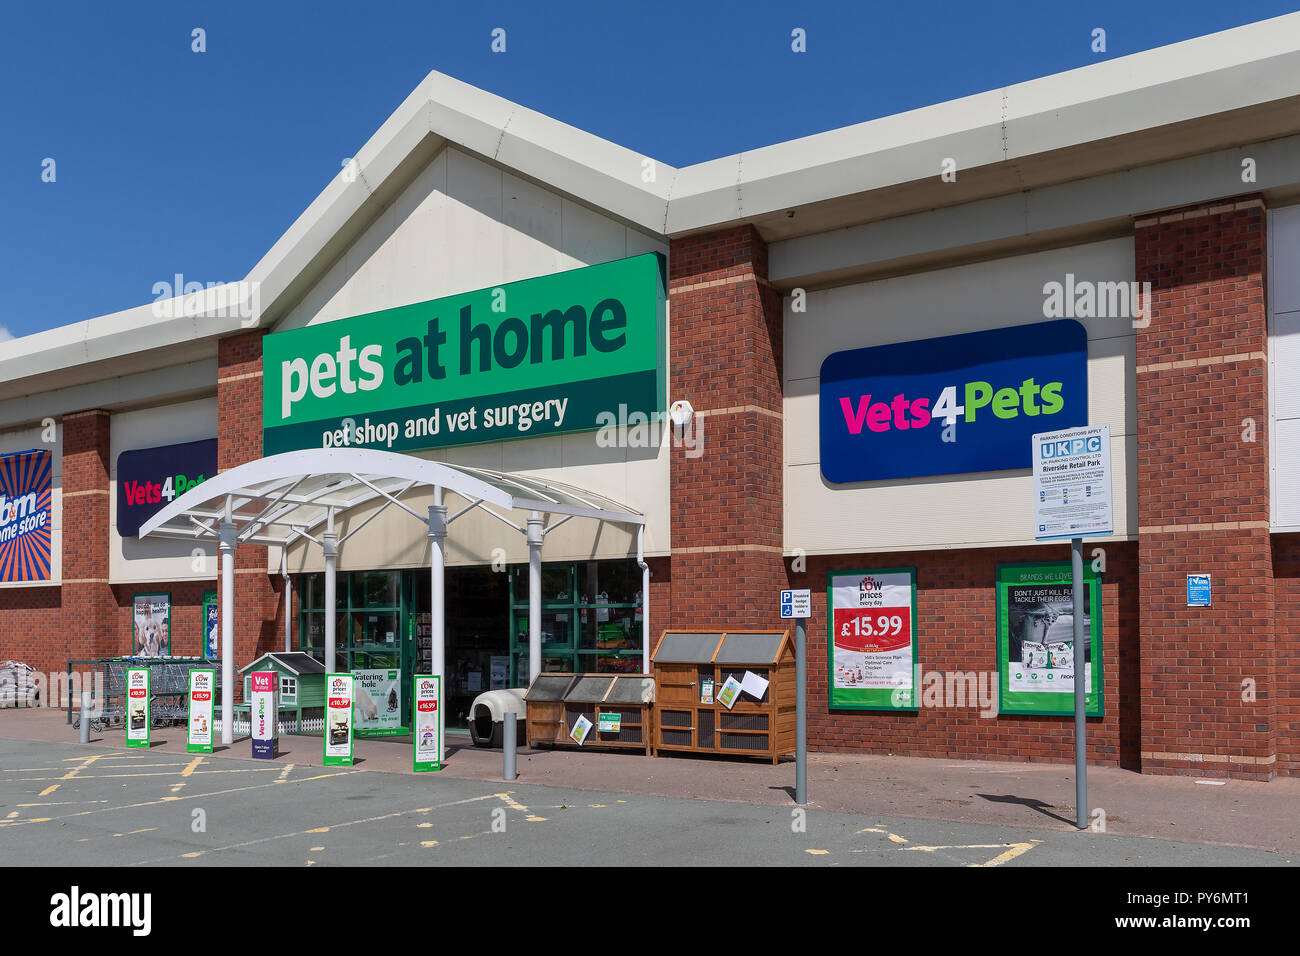 Warrington branch of Pets at Home with Vets4pets inside - Stock Image